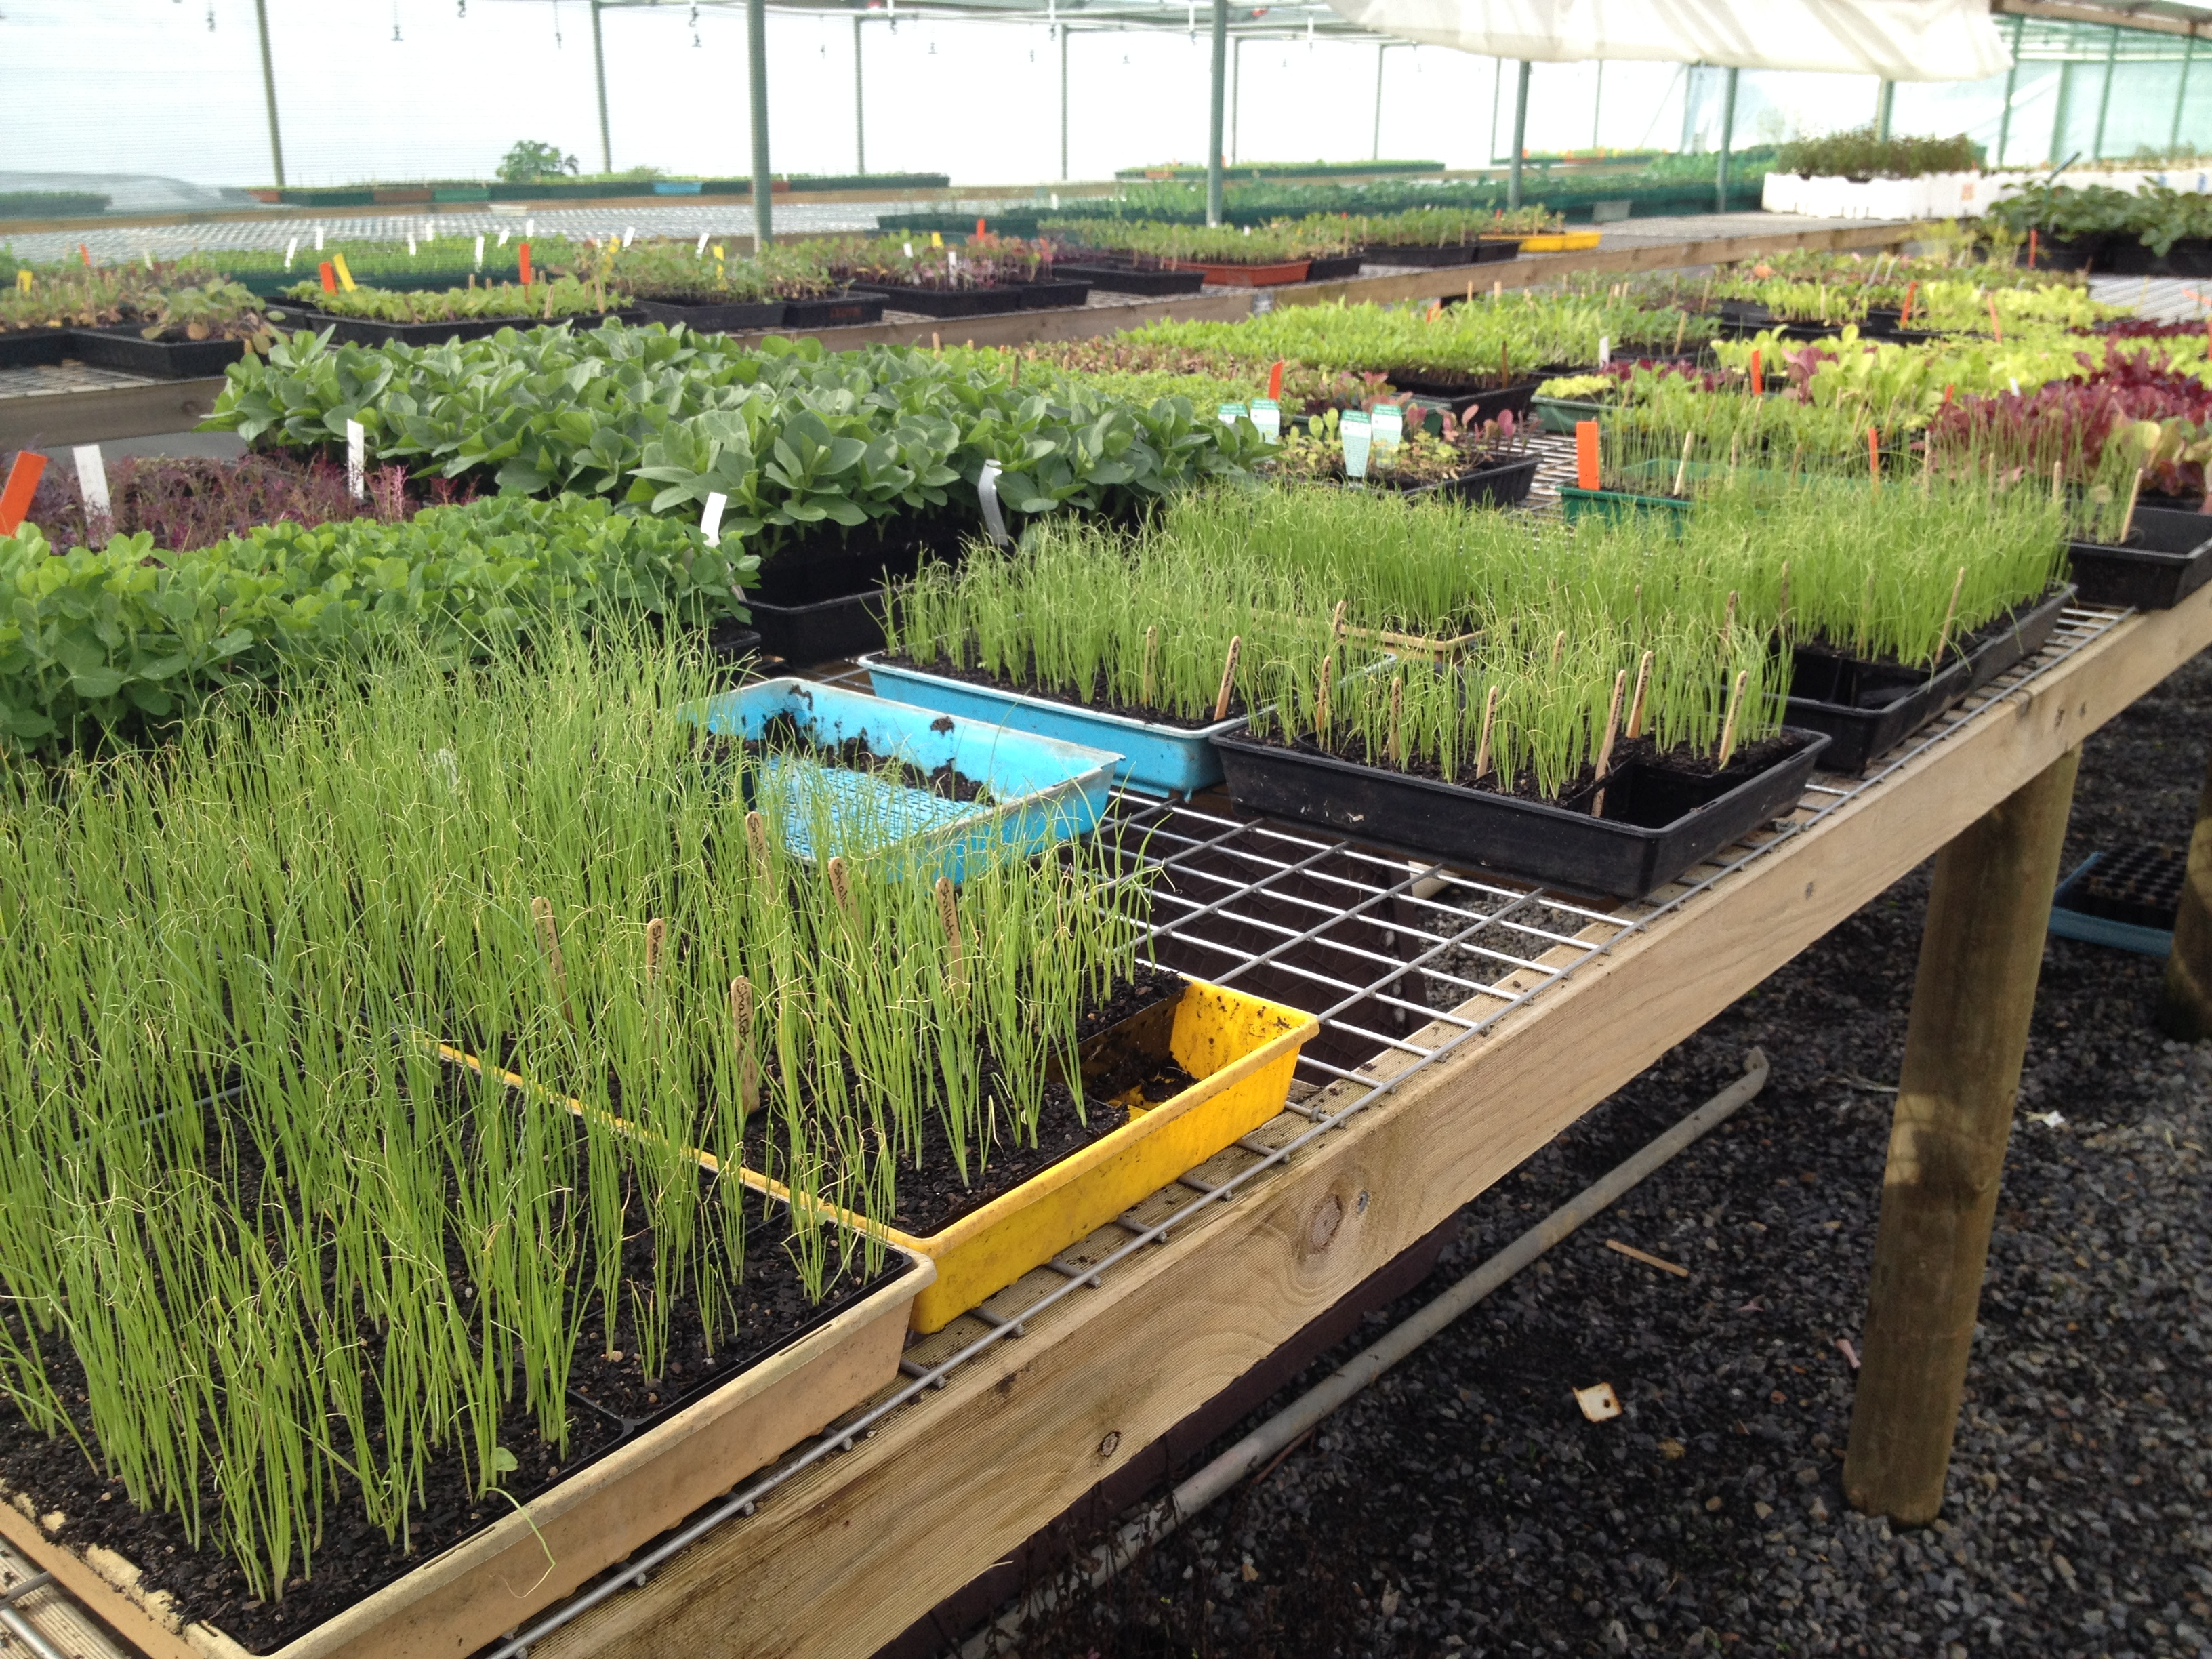 We Have Always Grown According To Organic Principles The Nursery Produces A Range Of Organically Vegetable Seedlings Herbs